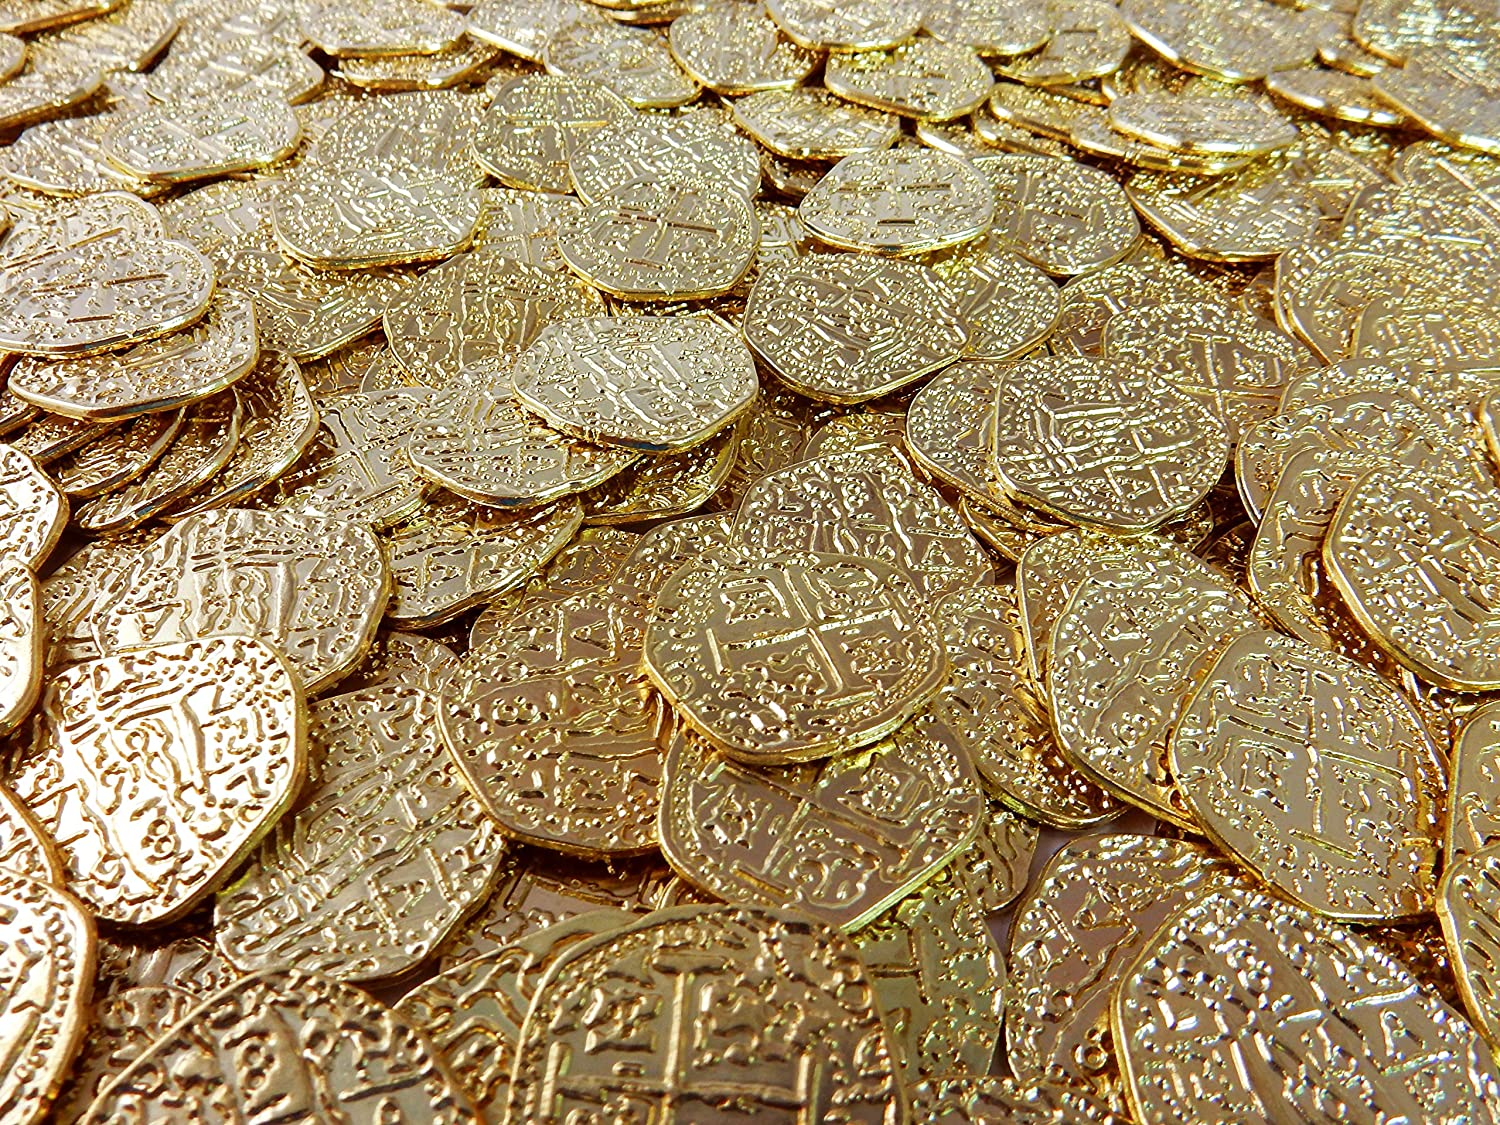 Lot of 50 Shiny Metal Gold Pirate Treasure Coins USA